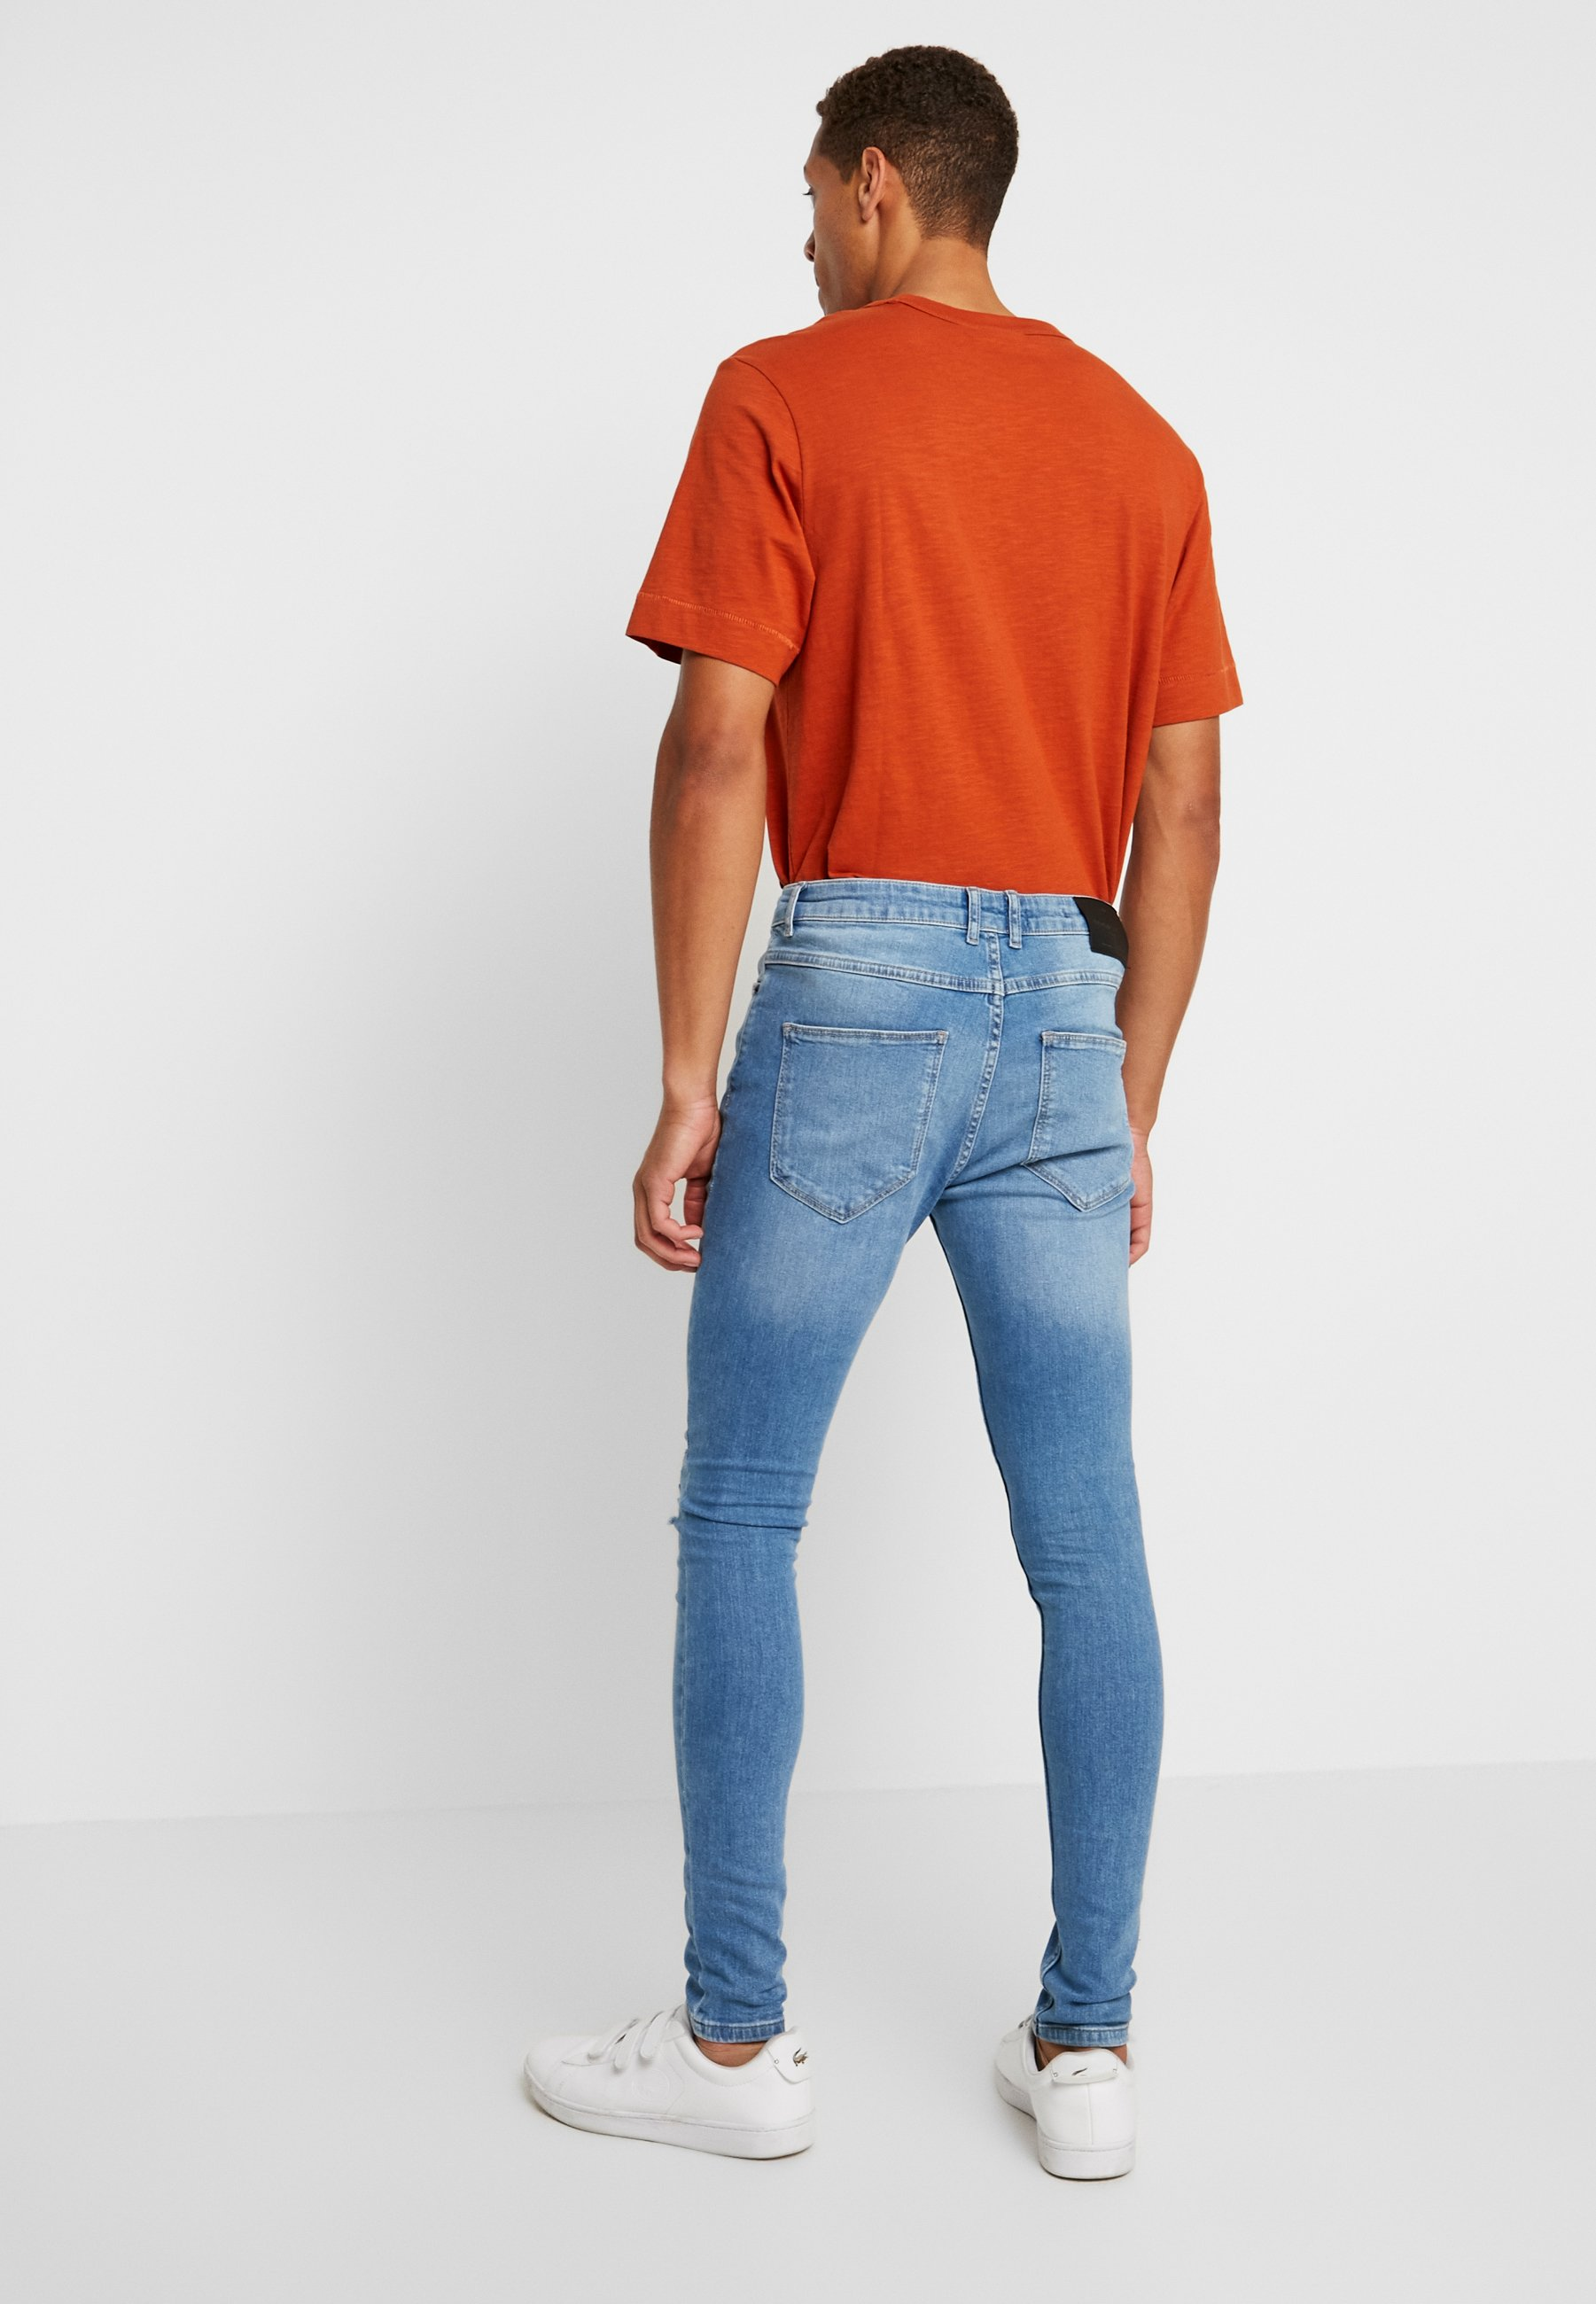 Solid SkinnyJeans Light Fit Super Stan Blue reoBdxQCW